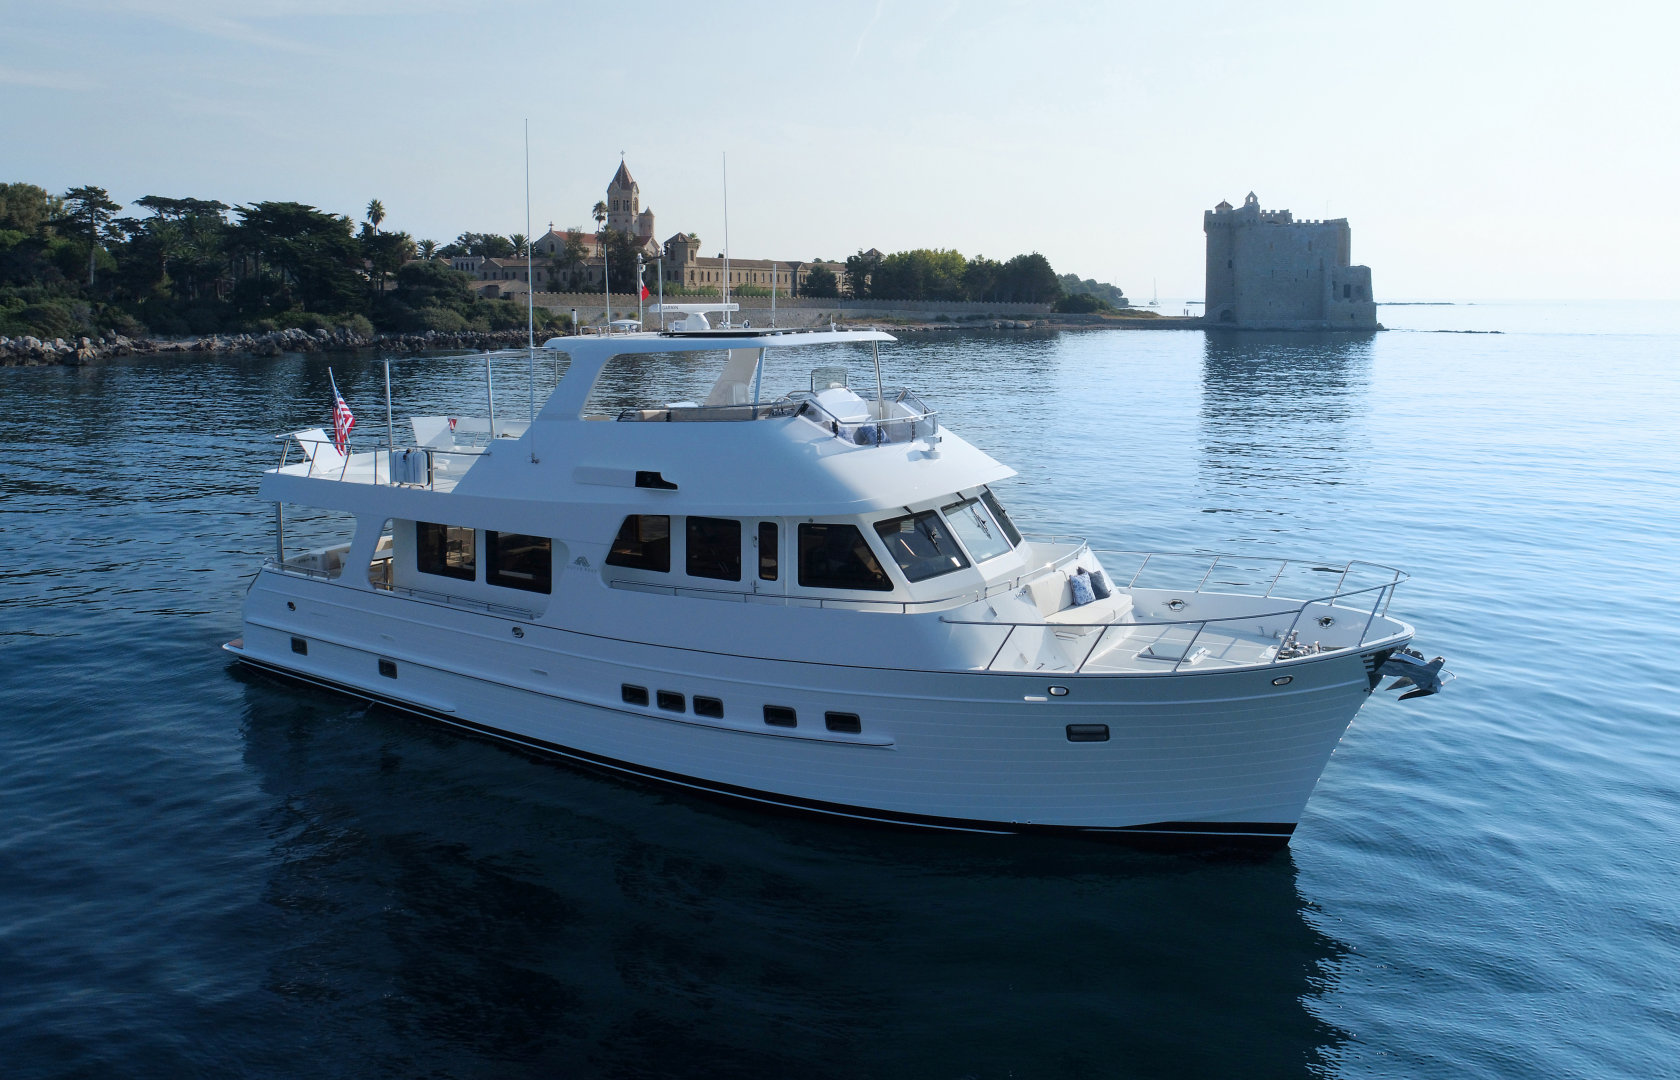 360 VR Virtual Tours of the Outer Reef 640 Motoryacht – VRCLOUD